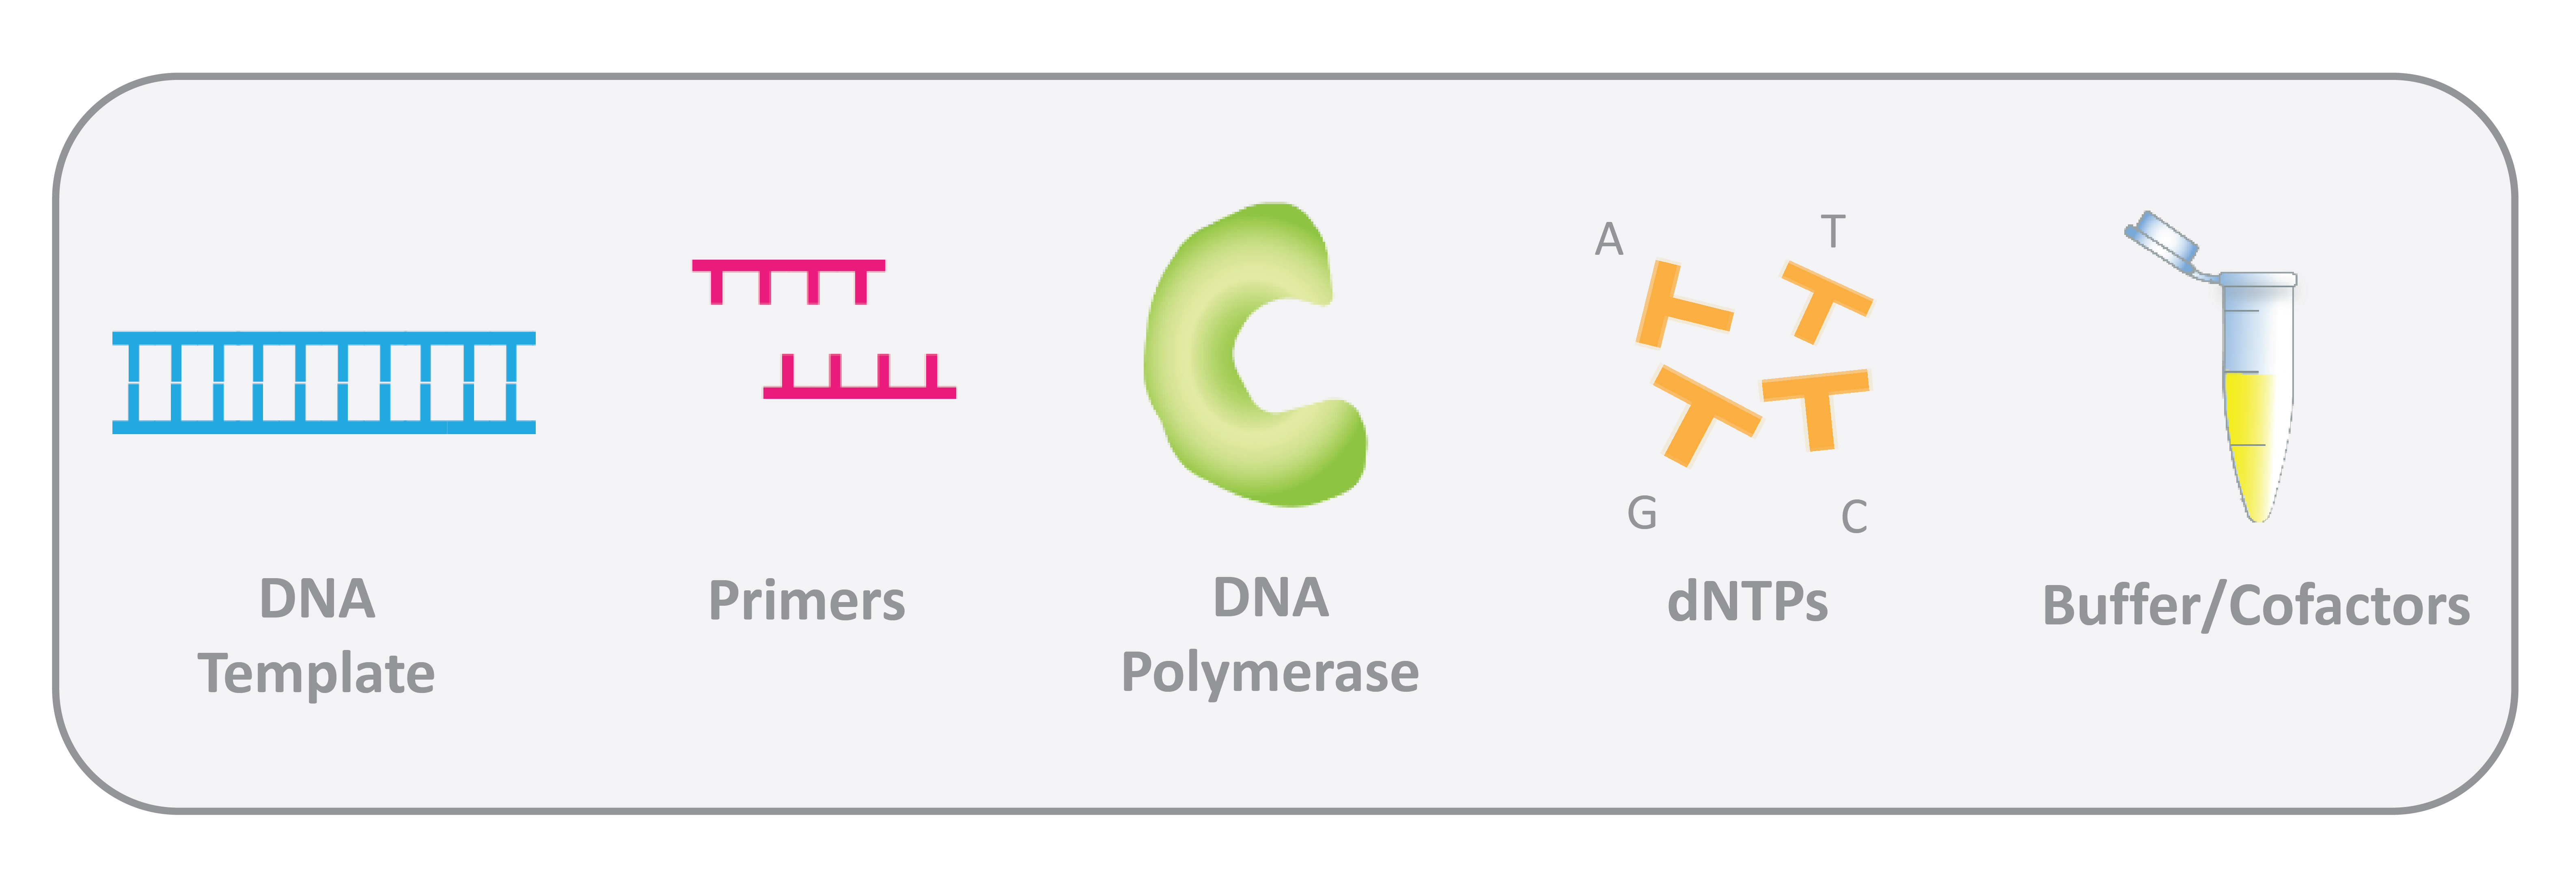 molecular components of PCR (polymerase chain reaction) includes primers, DNA template, Taq DNA polymerase, dNTPs, buffer, magnesium chloride and cofactors